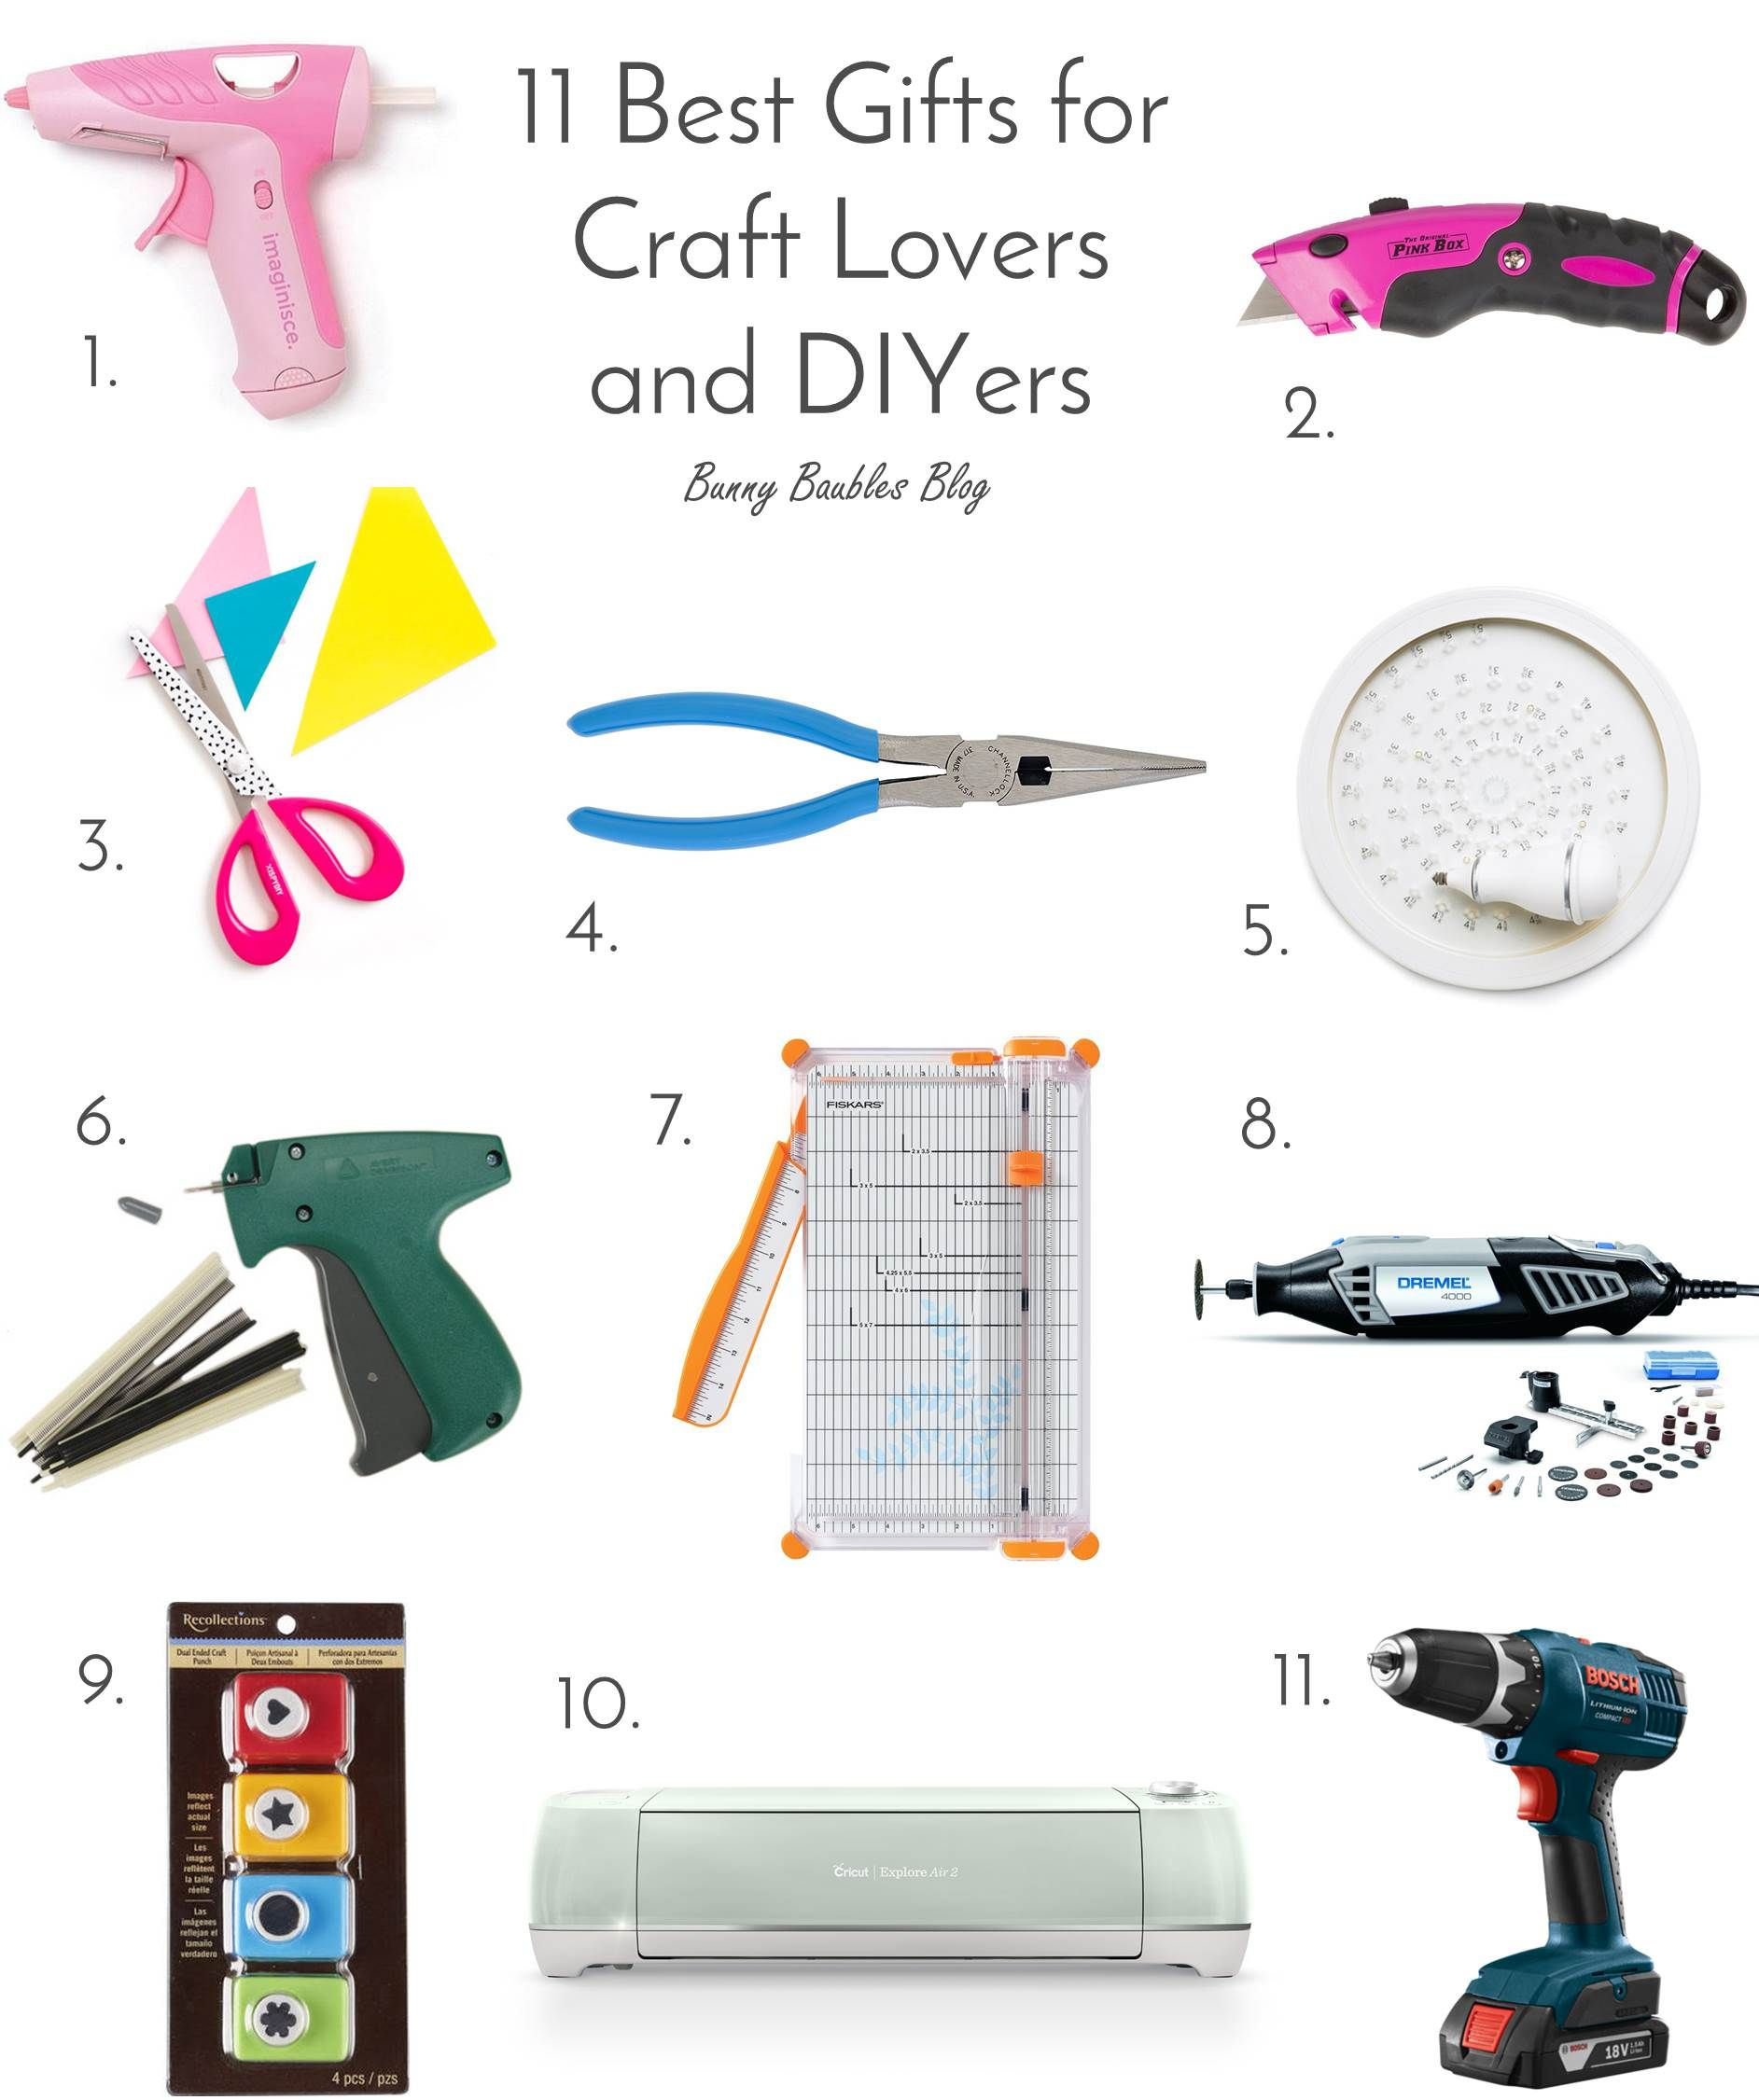 11 Best Gifts For Craft Lovers And Diyers Craft Lovers Best Gifts Gifts